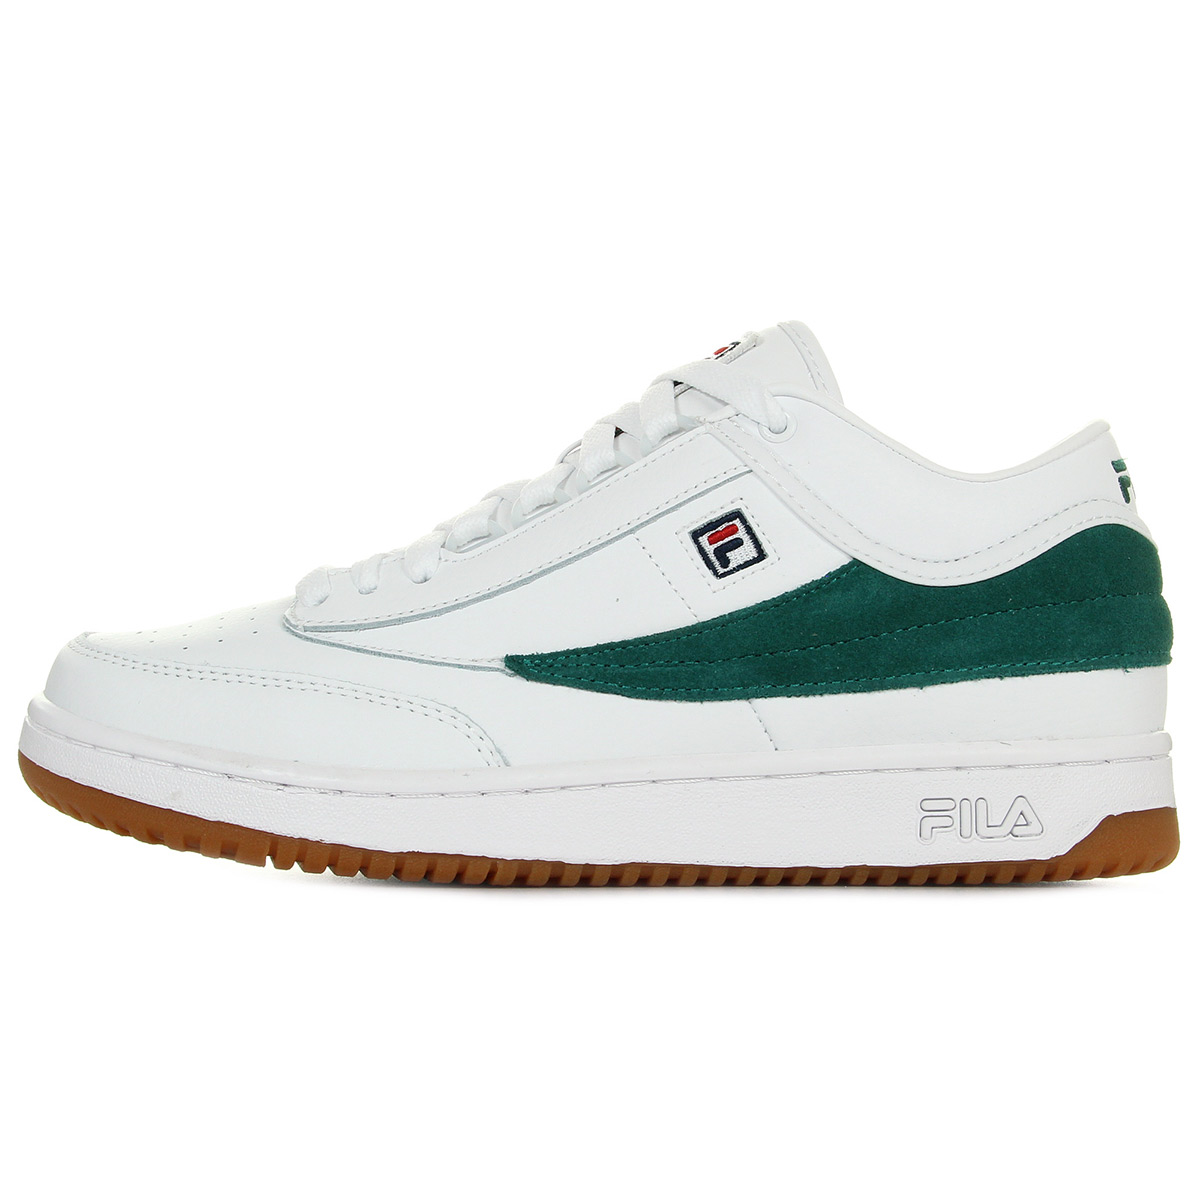 "Fila T1 MID ""Shady Glade"" 1VT13074162, Baskets mode homme"